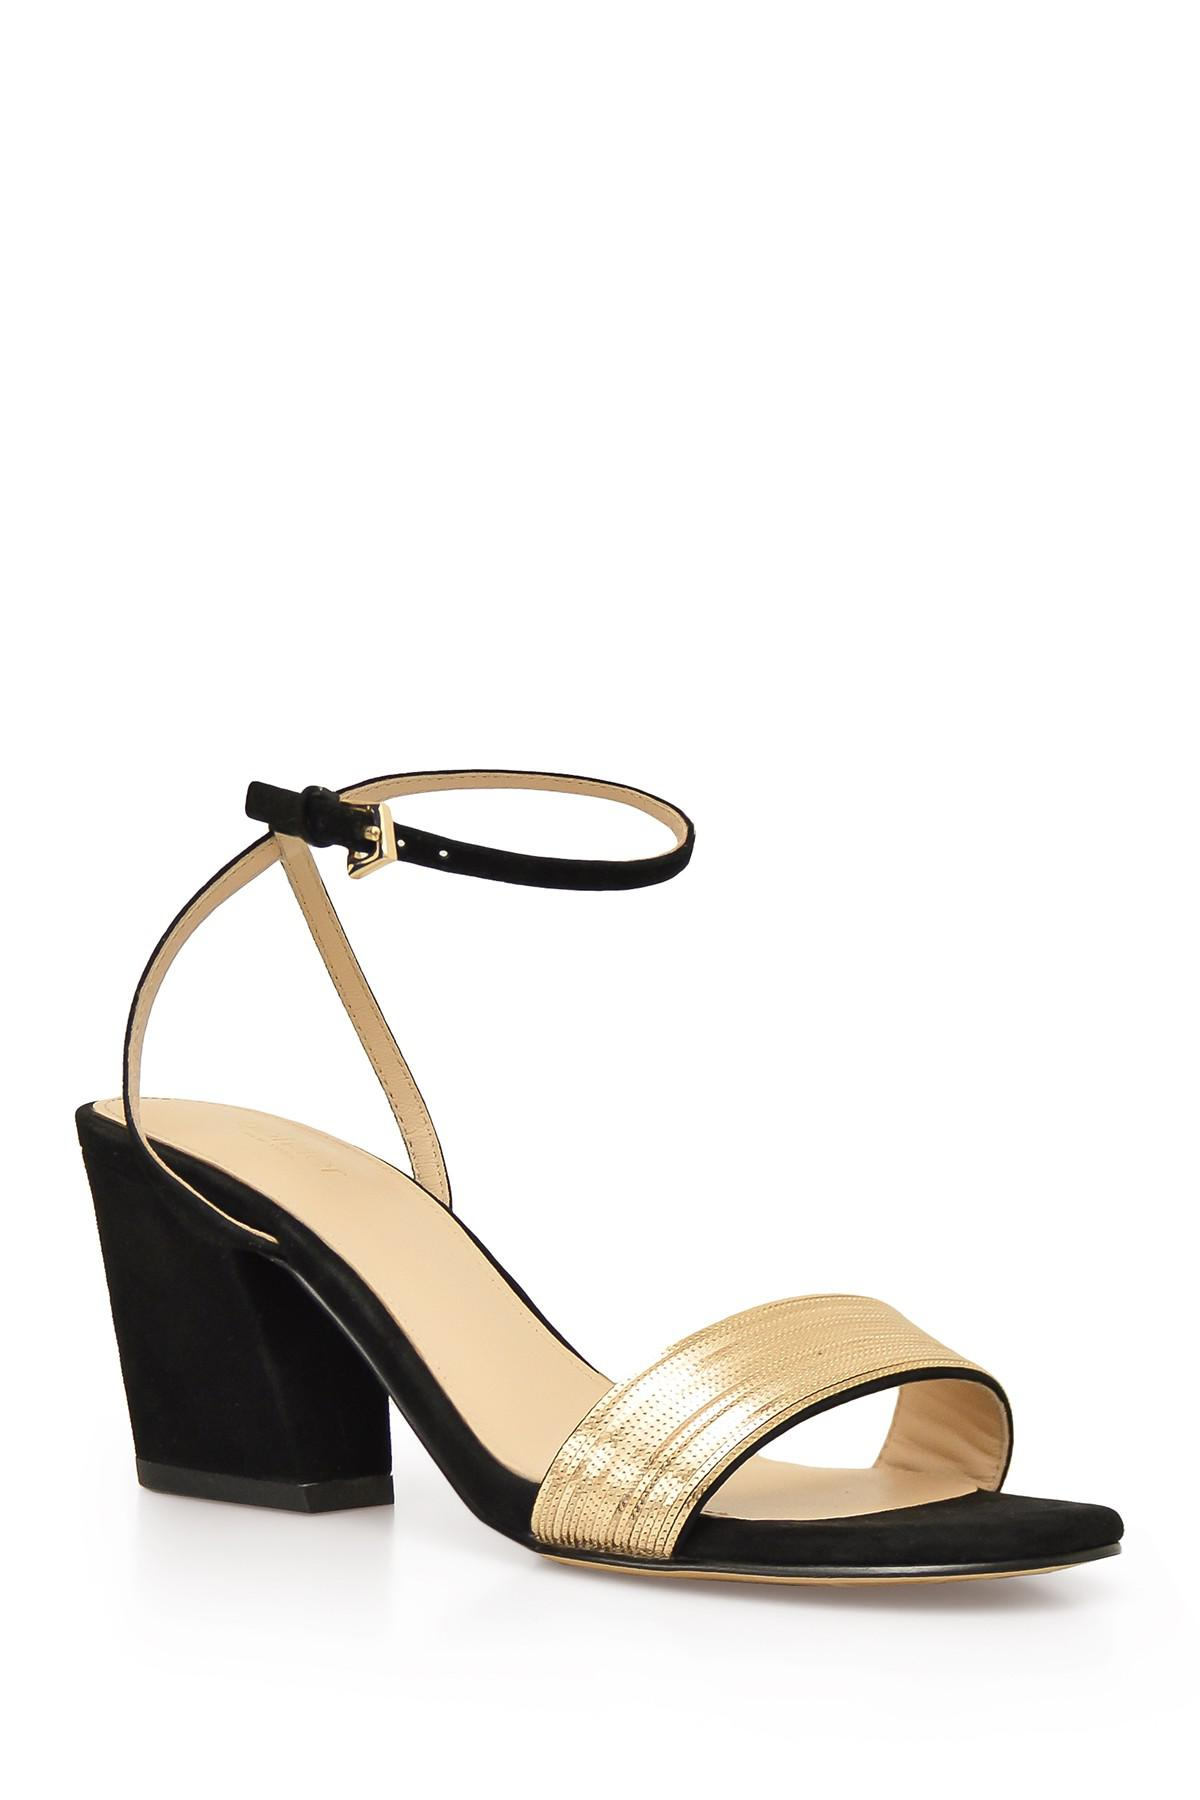 Botkier Persi Heeled Sandal 4ghFg